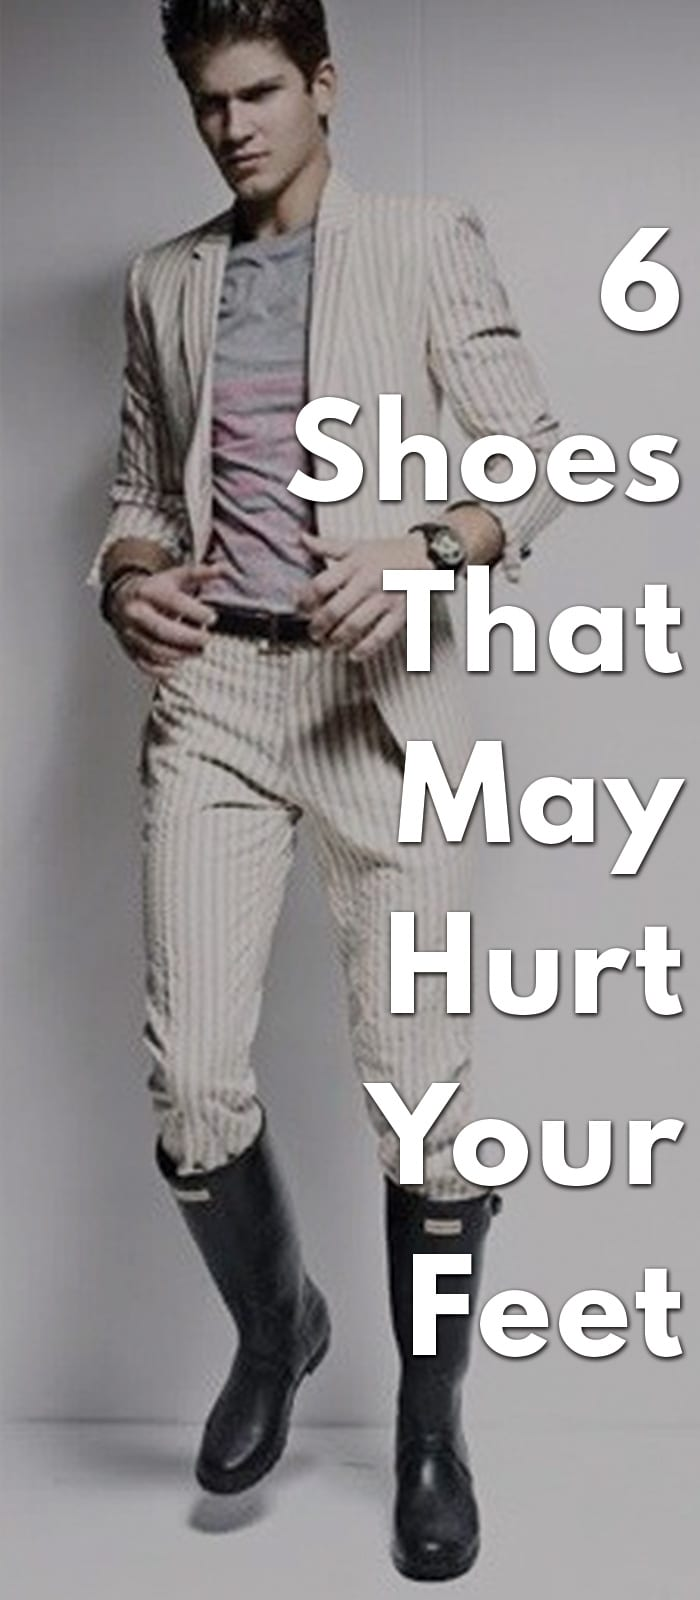 6-Shoes-That-May-Hurt-Your-Feet